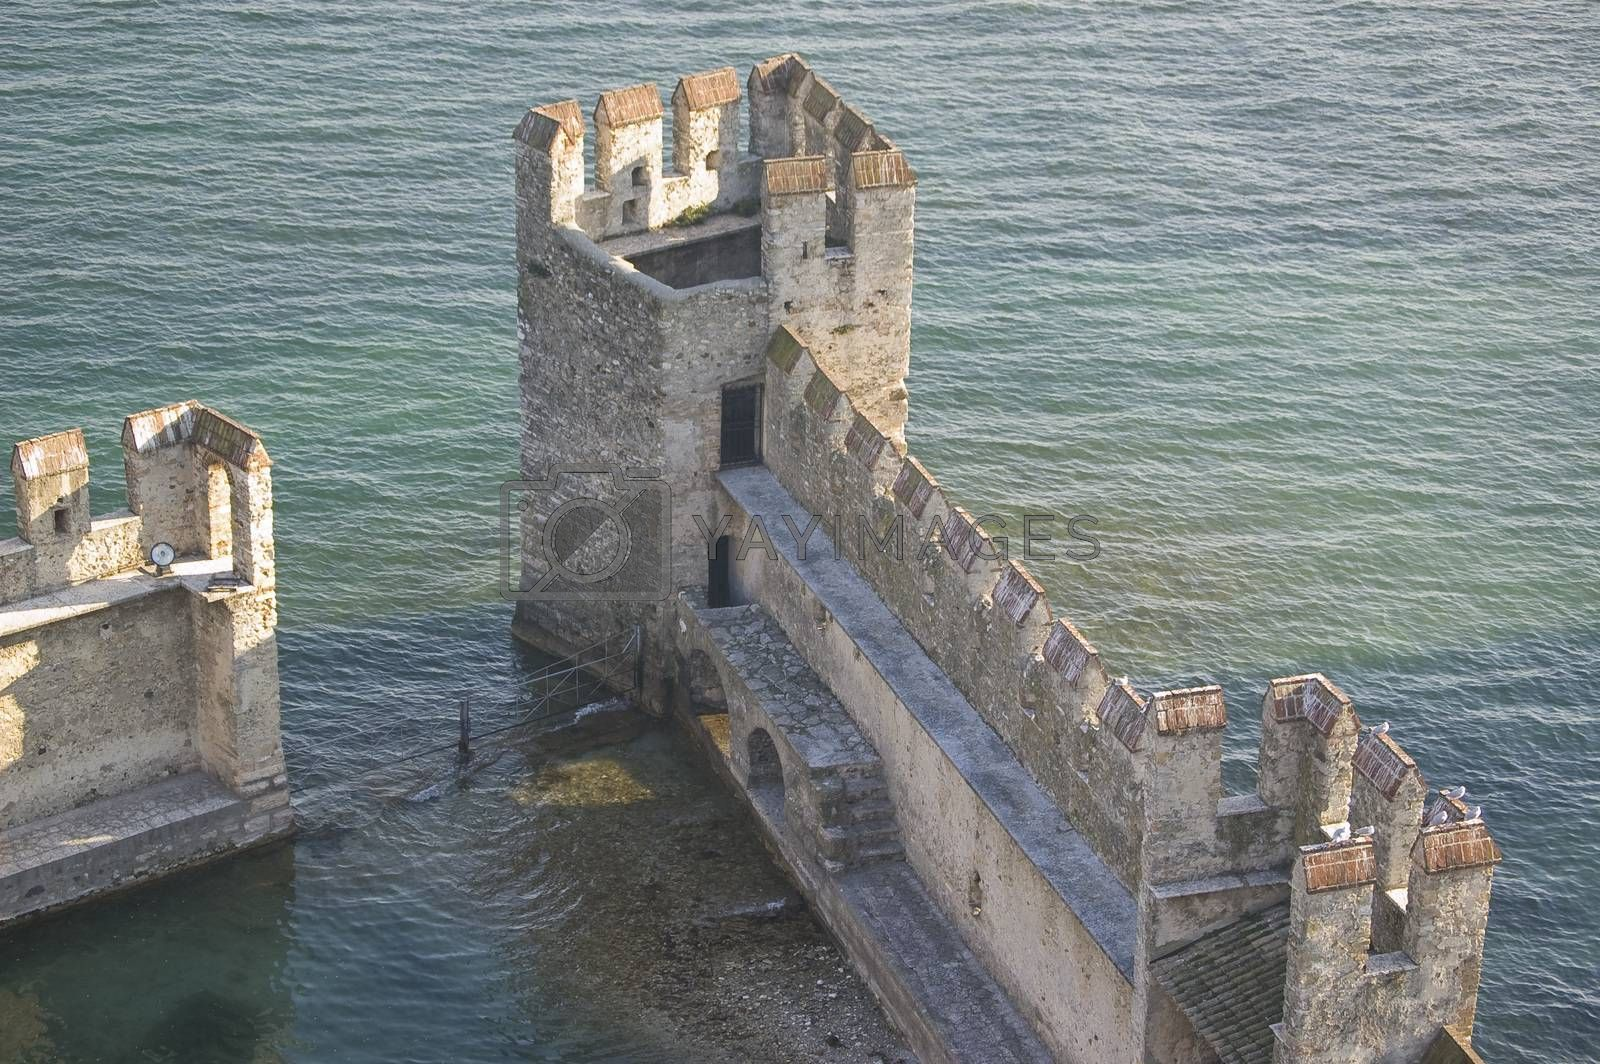 The old fortification located on the Garda's lake in Lazise, Italy